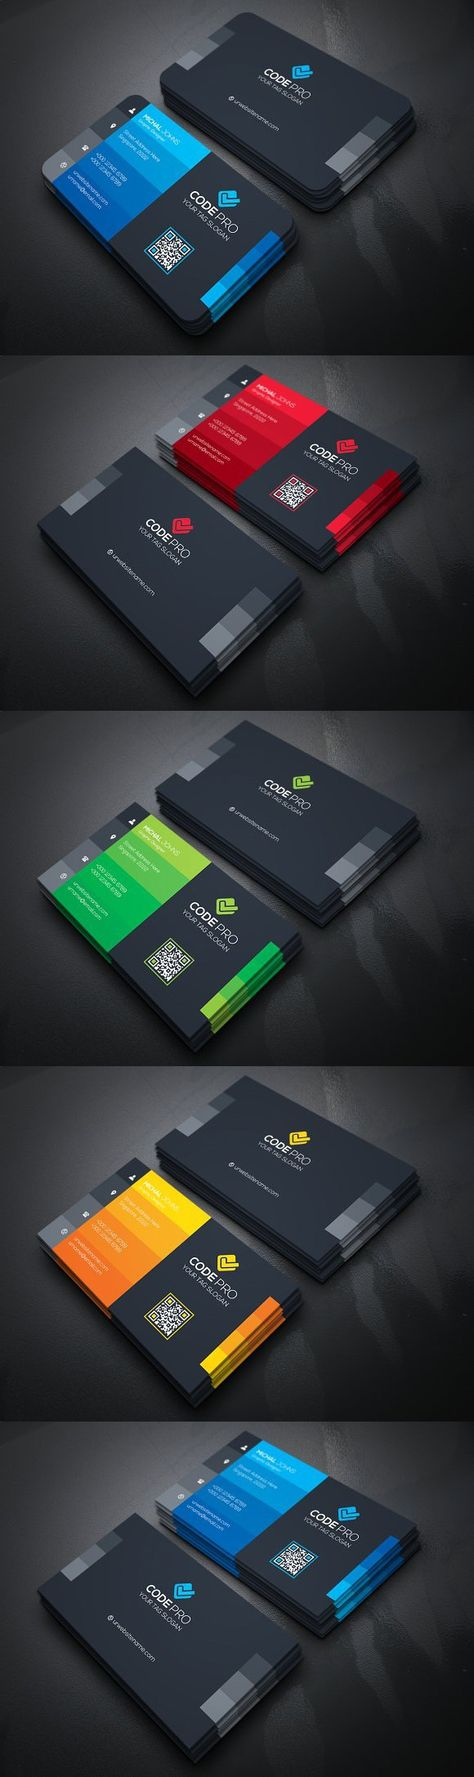 Pin By Dhanapal On Hduh Pinterest Business Cards Card Templates